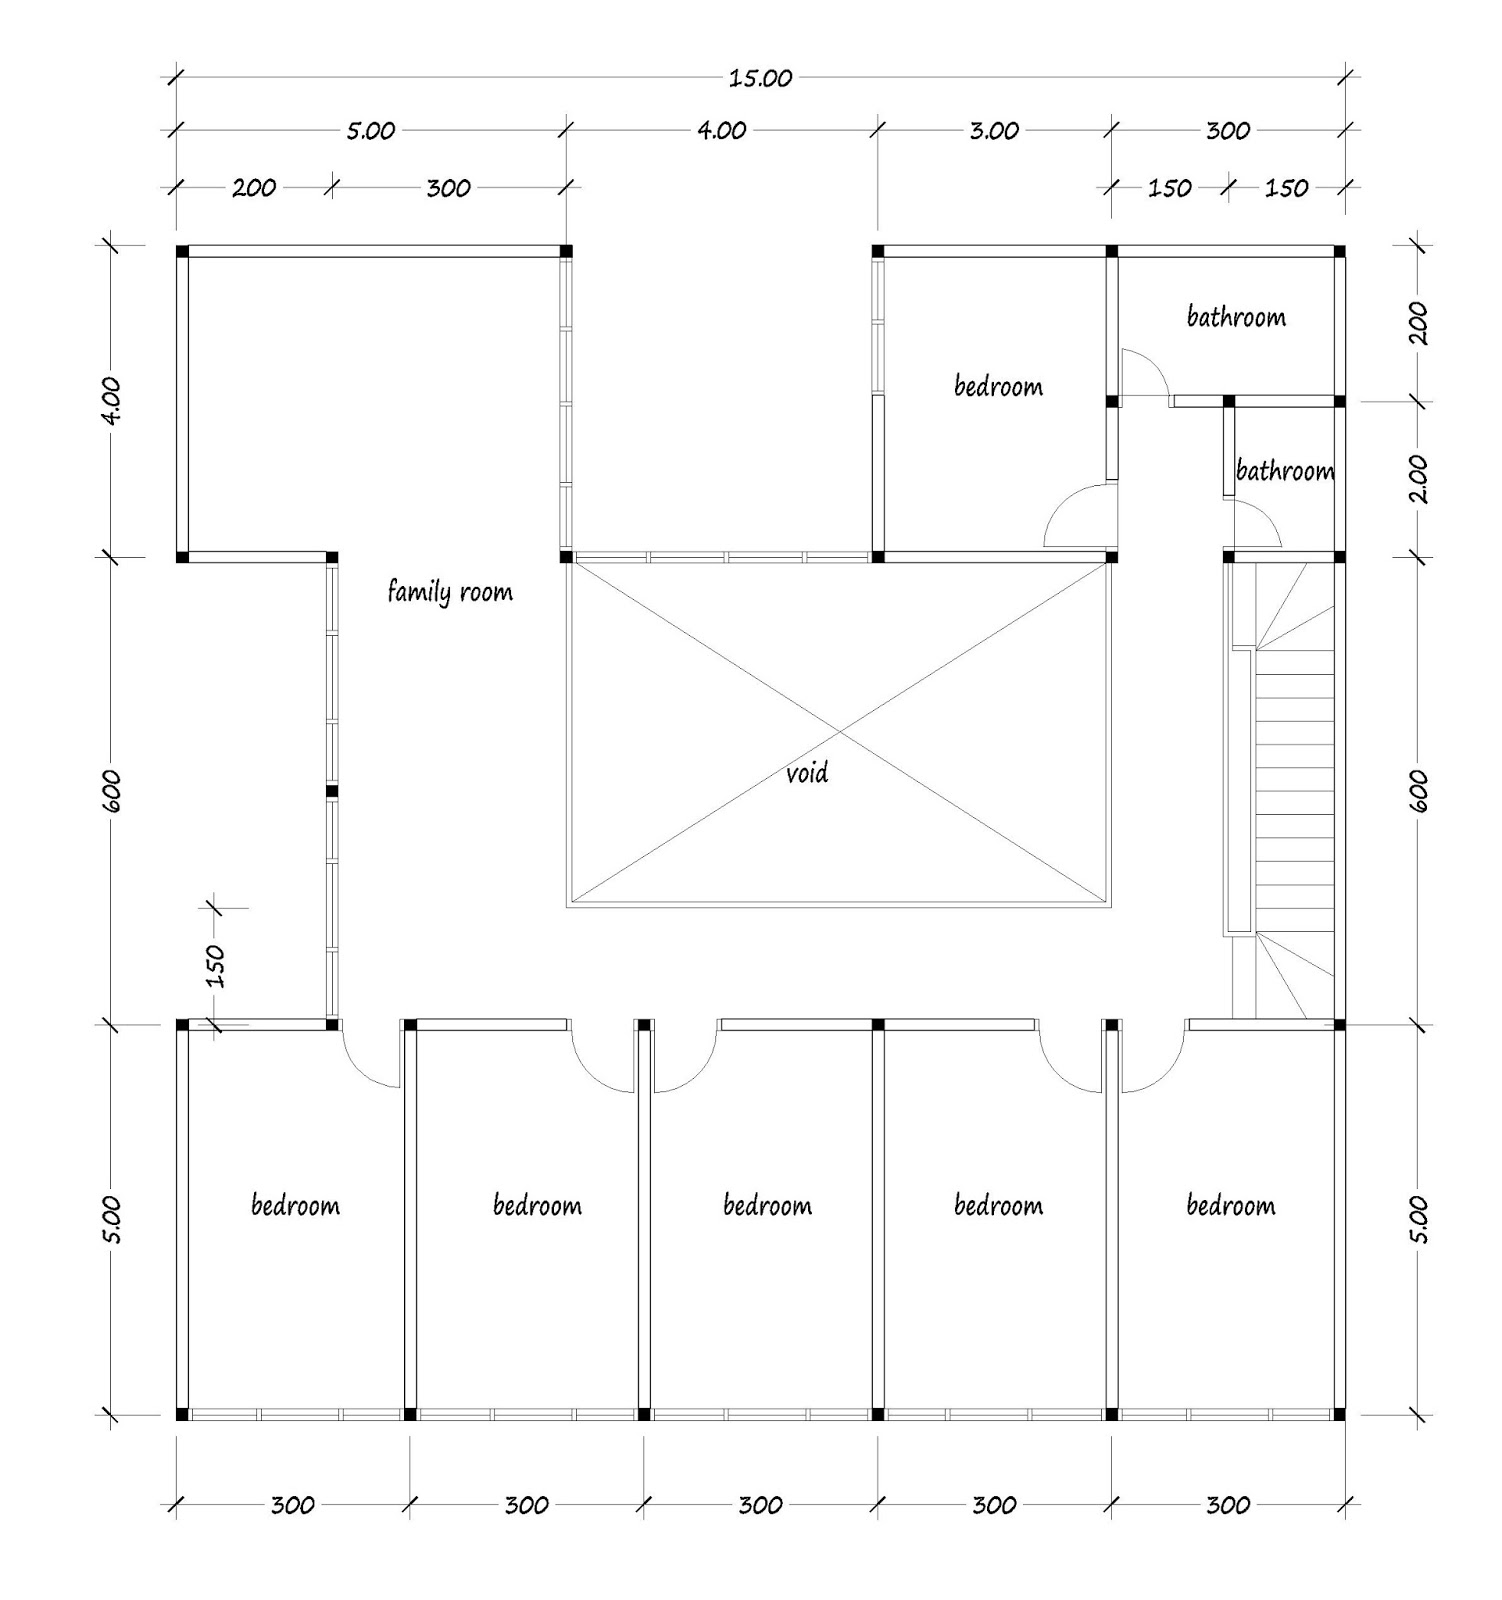 Appealing 300 square meter house plan gallery exterior for 300 square meter house plan